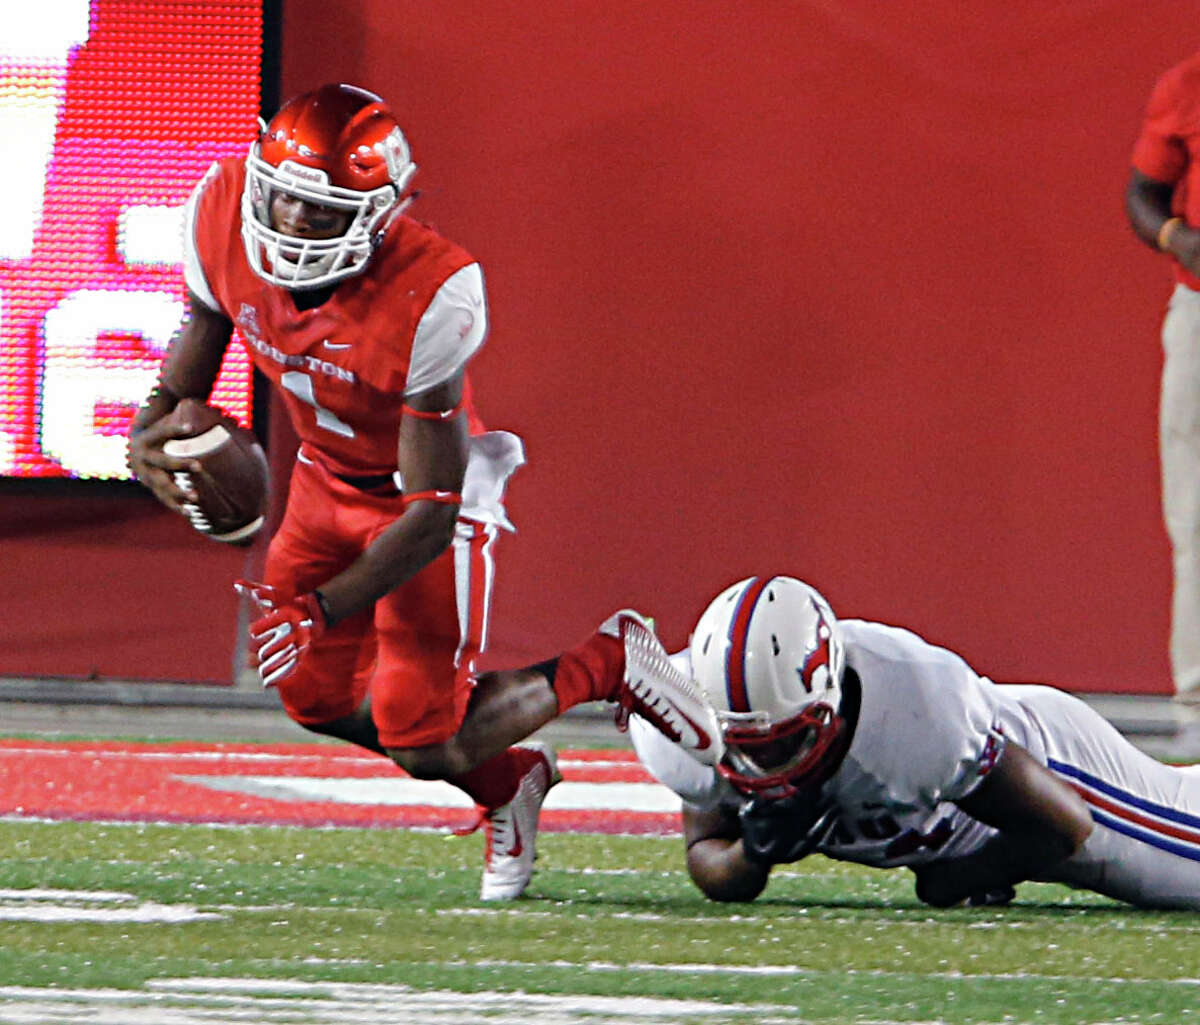 Houston Cougars quarterback Greg Ward Jr. left, is tripped up by Southern Methodist Mustangs defensive lineman Jarvis Pruitt right, during the first half of men's college football game action at TDECU Stadium Thursday, Oct. 8, 2015, in Houston.